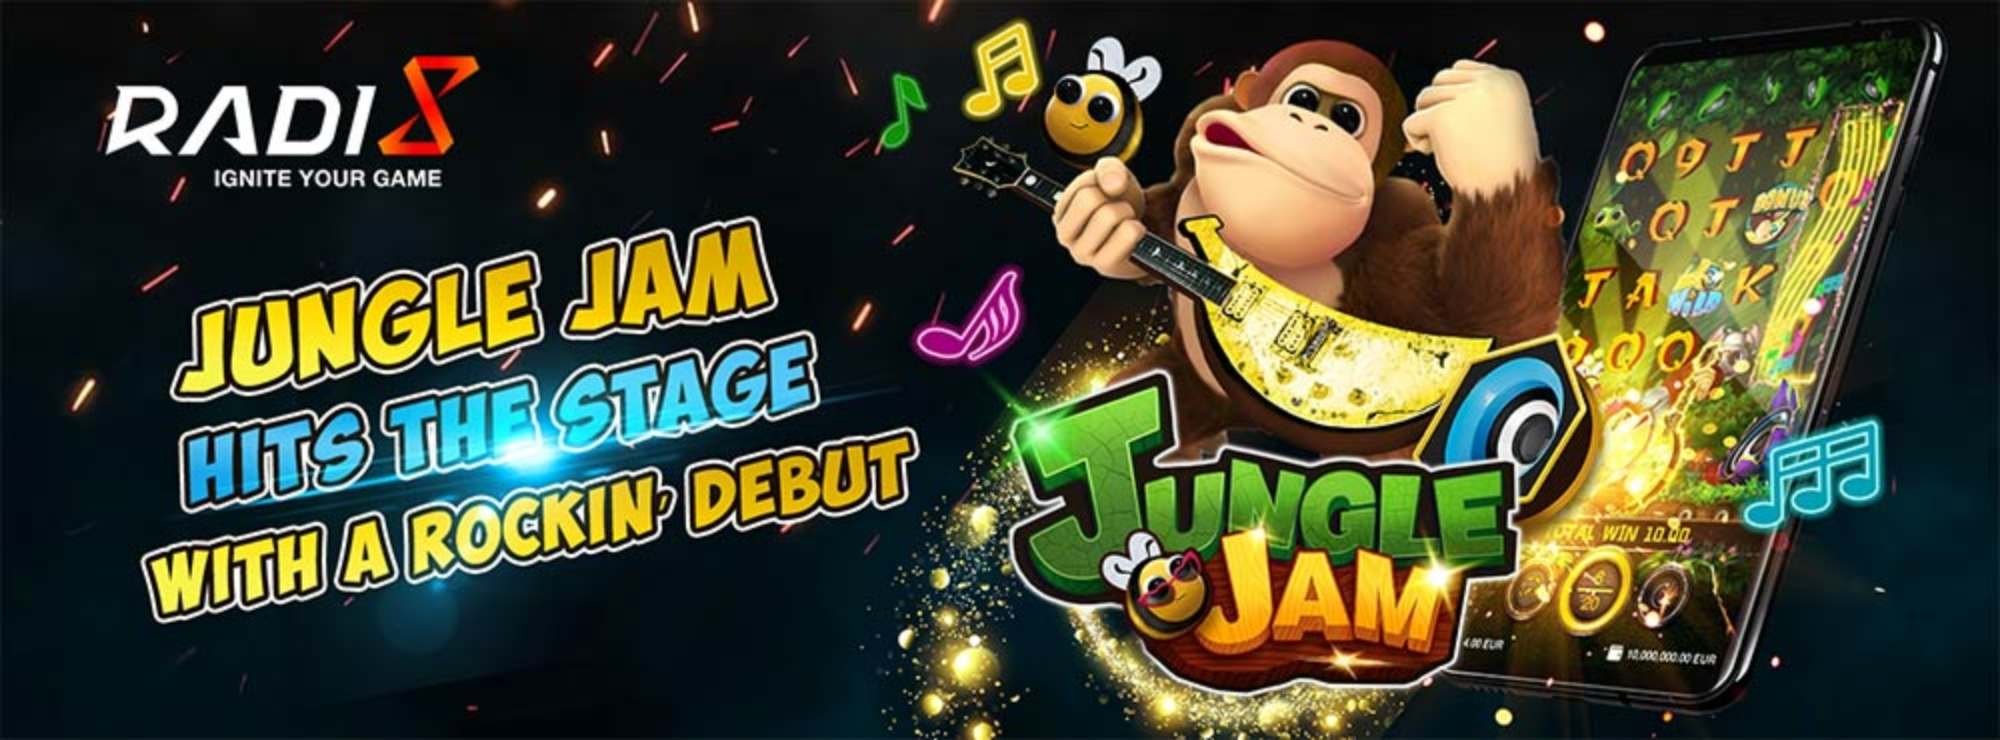 The Jungle Jam Online Slot Demo Game by Radi8